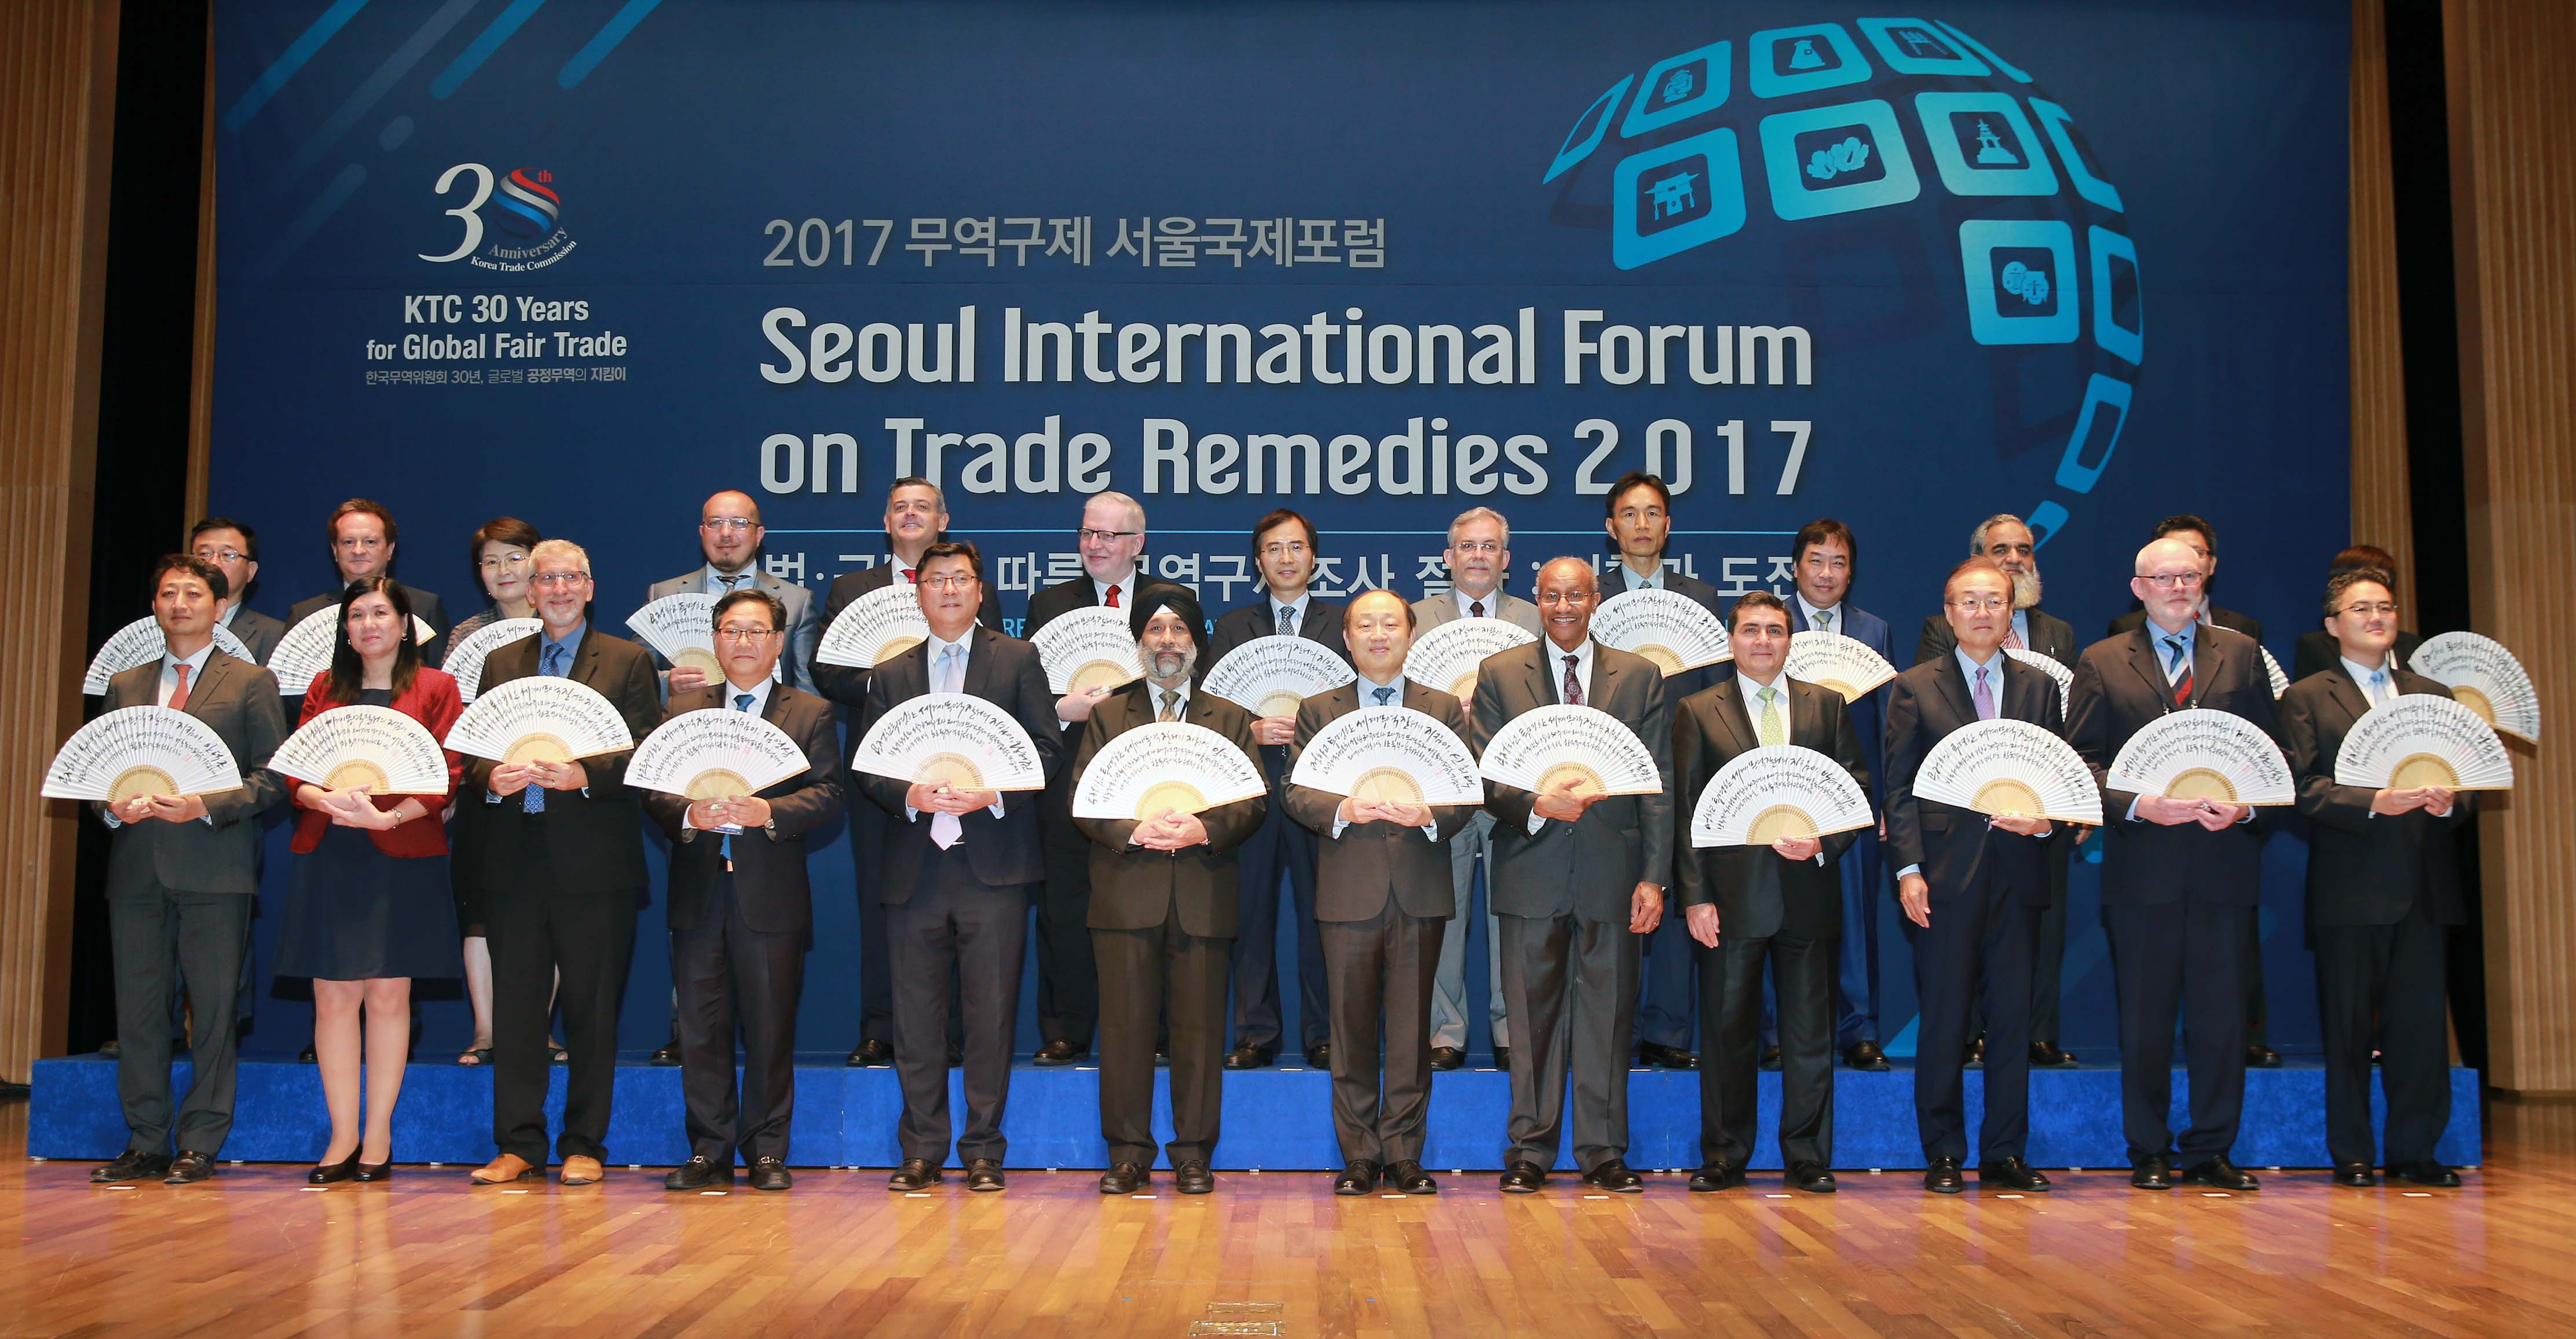 Korea Trade Commission holds 2017 Seoul International Forum on Trade Remedies